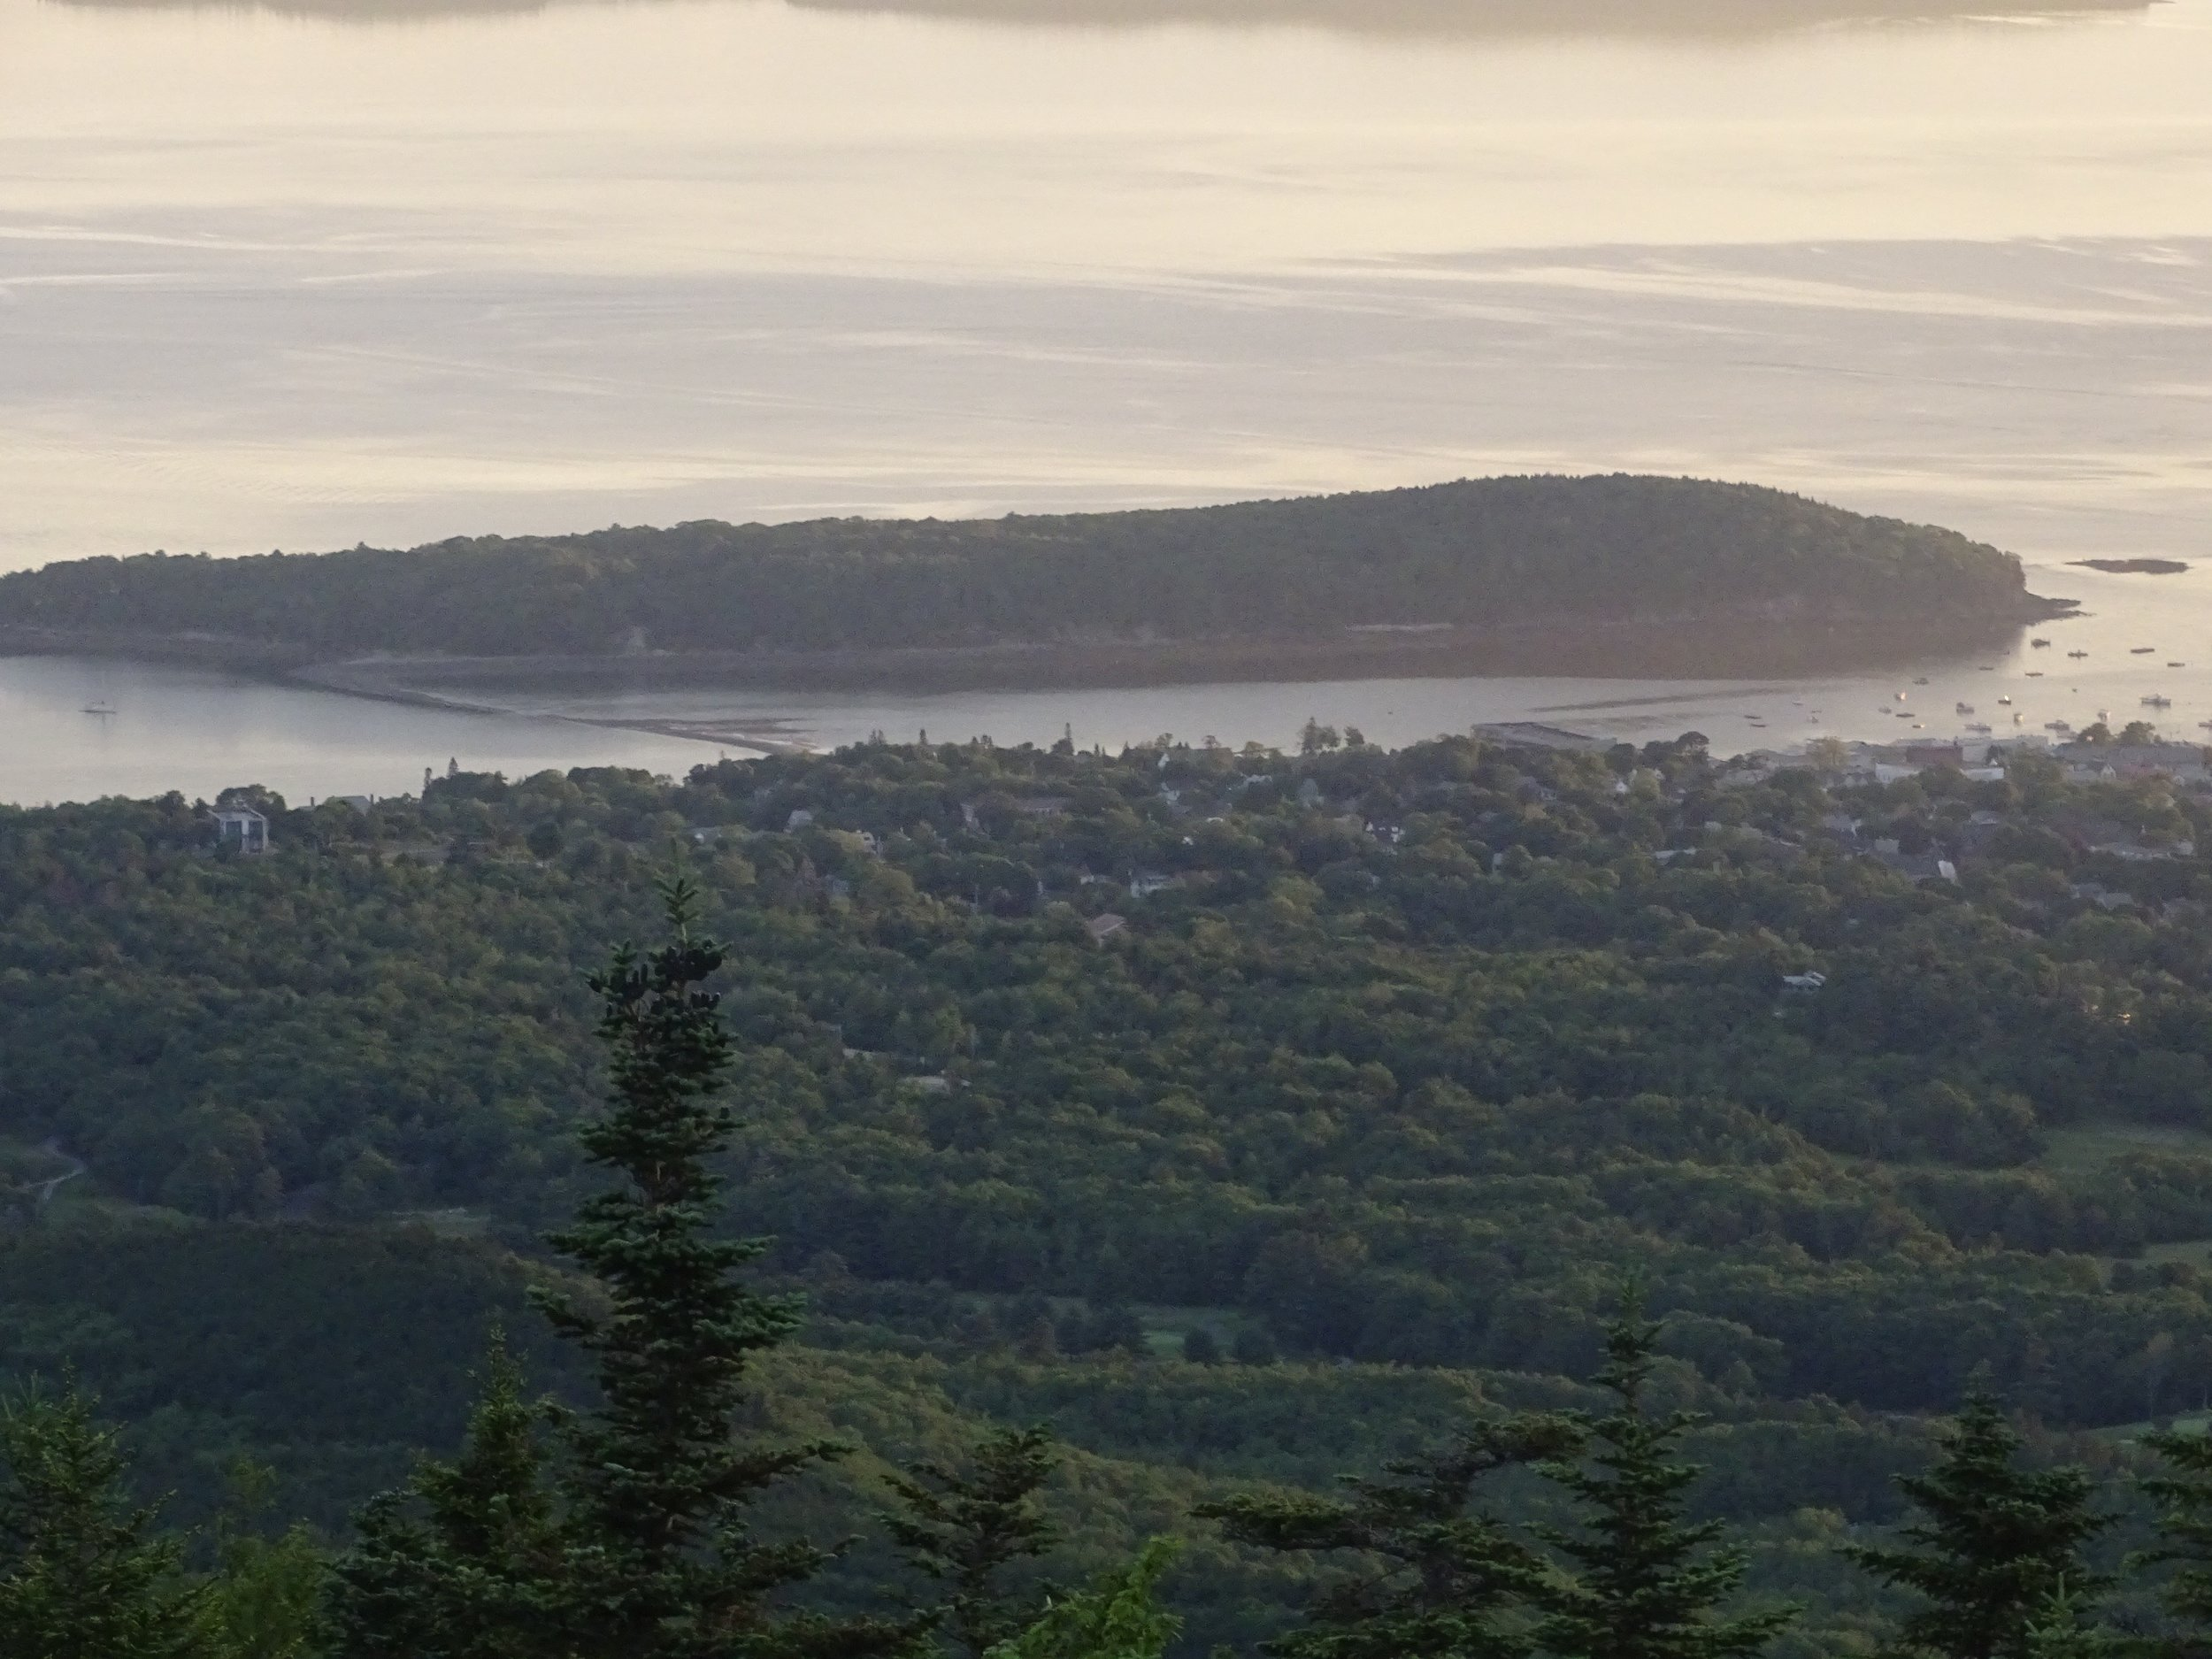 The view of Bar Harbor Island from the top of Cadillac Mountain.